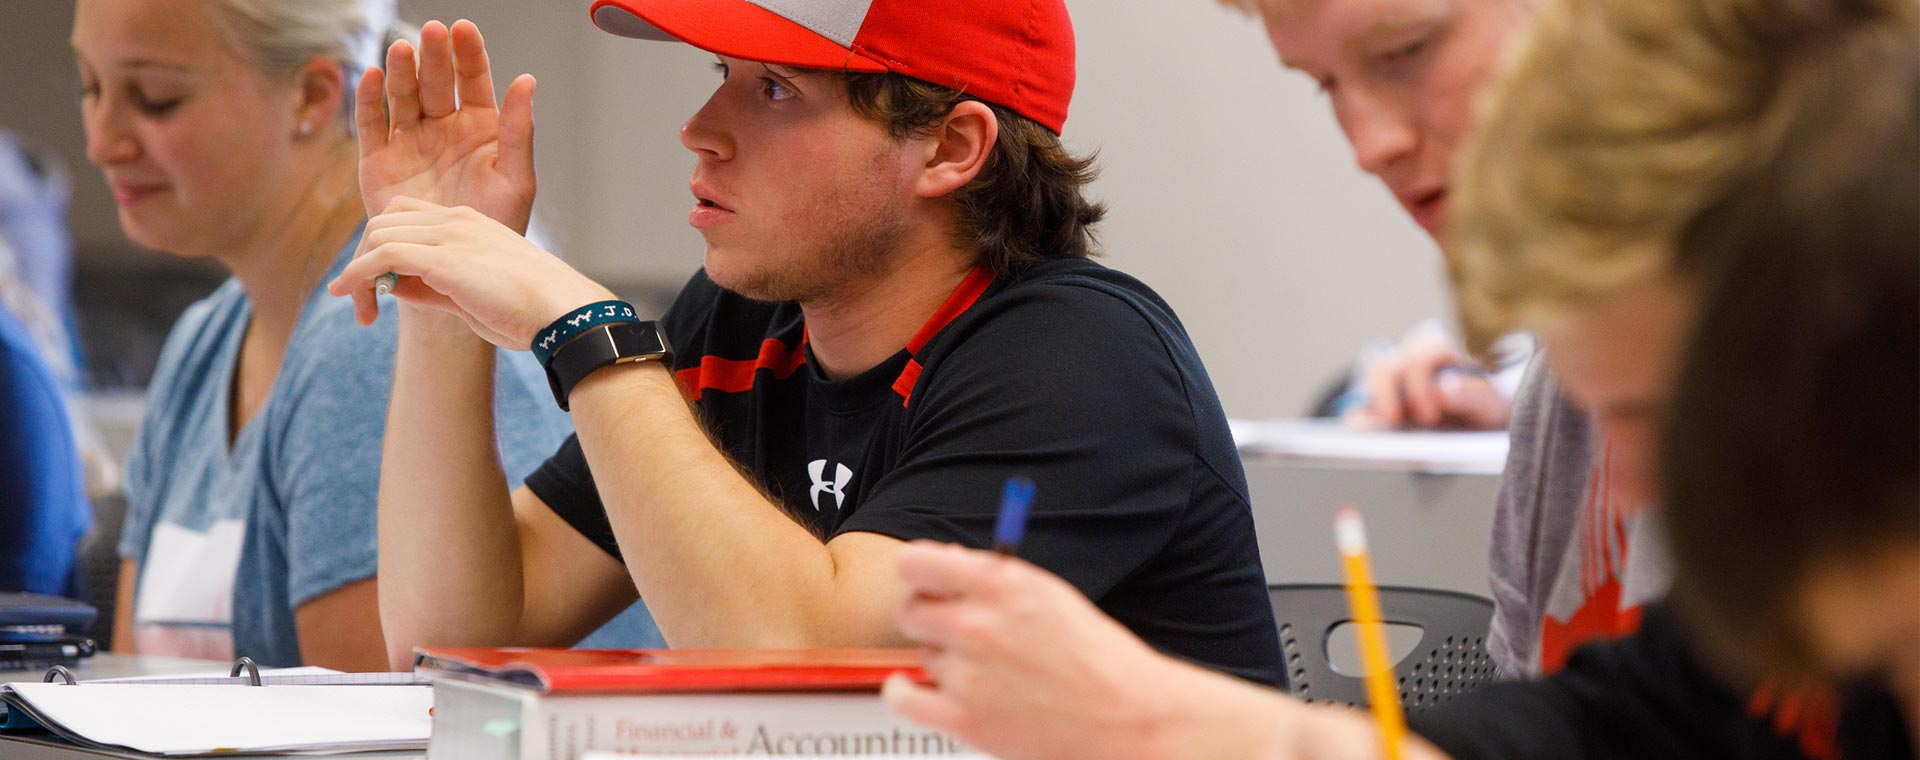 Our accounting students' CPA exam pass rates are #1 in Iowa and #2 in the nation.